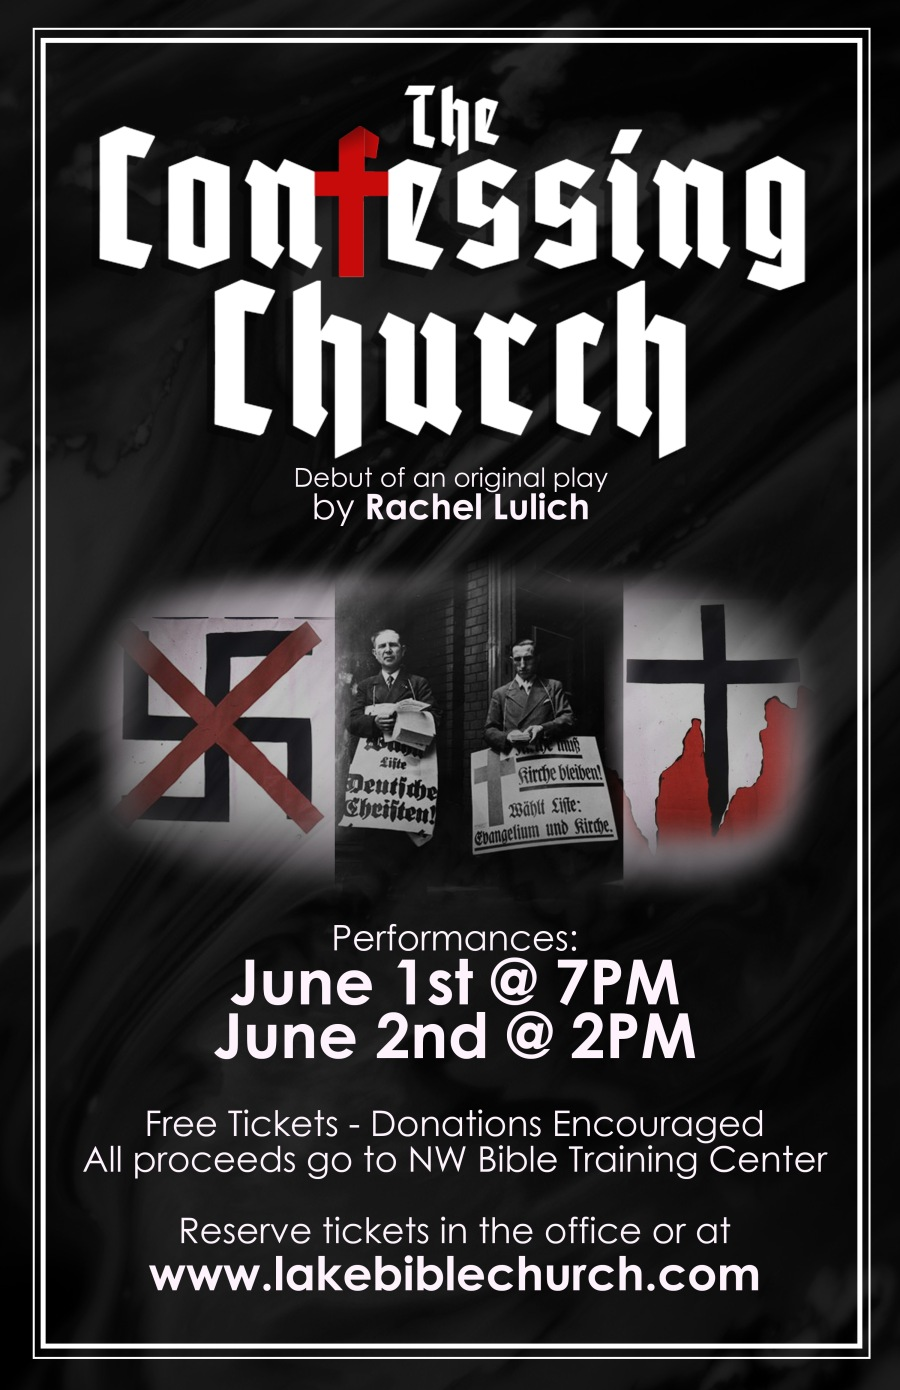 Confessing Church Poster